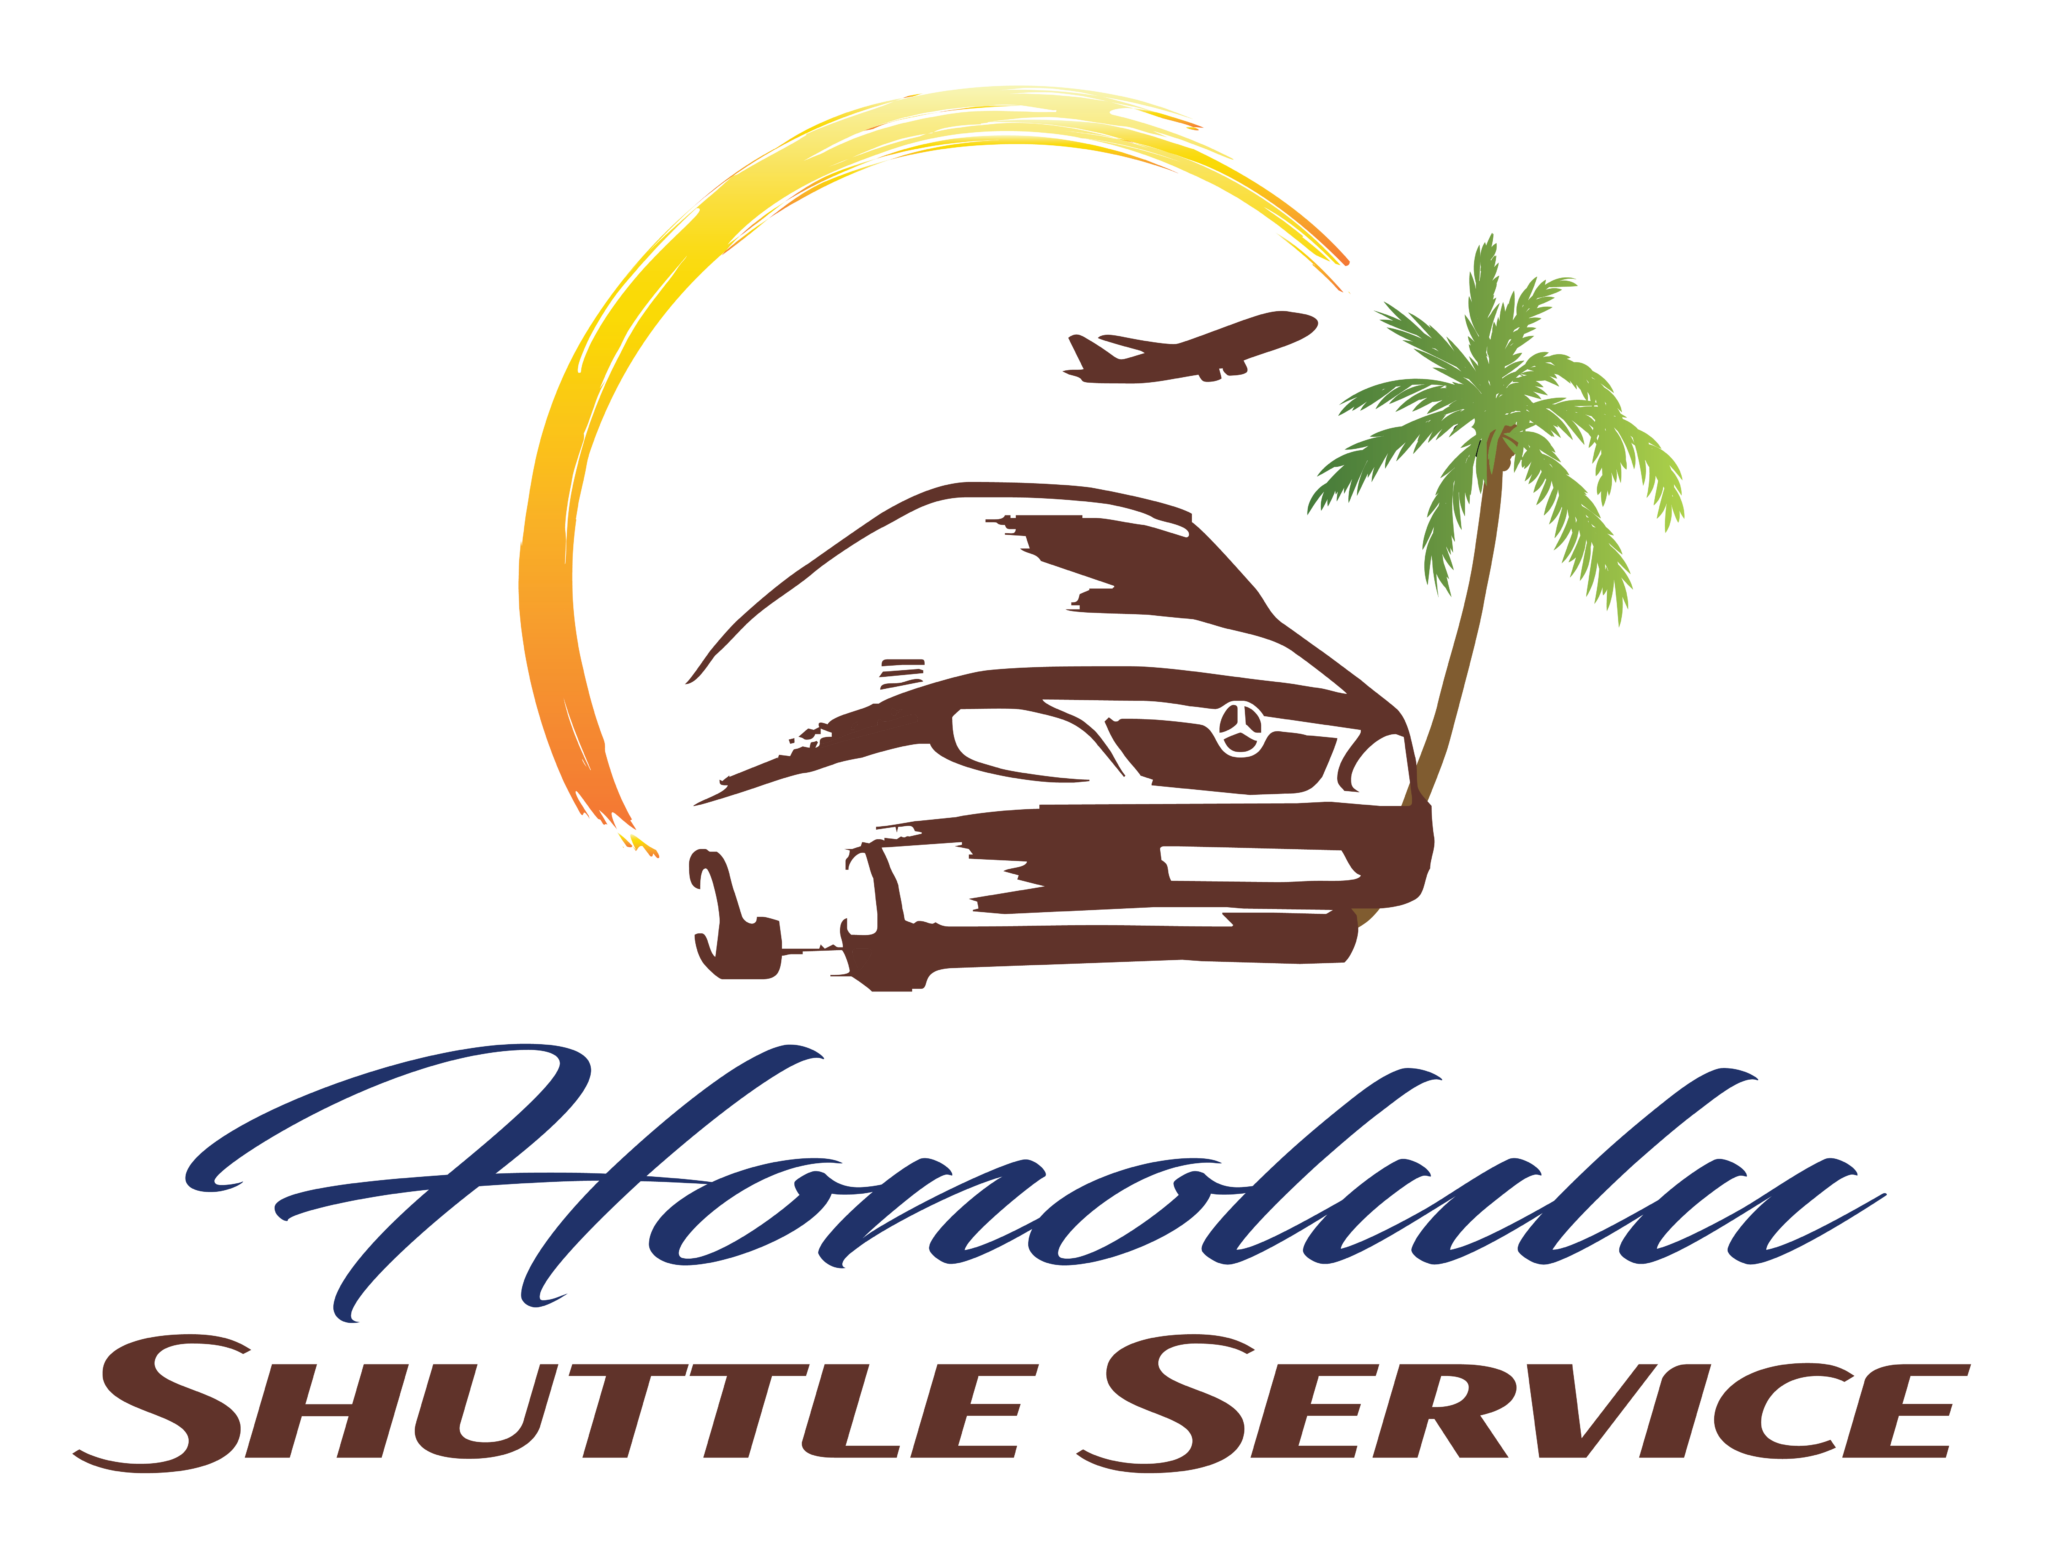 Honolulu Shuttle Services (Logo)